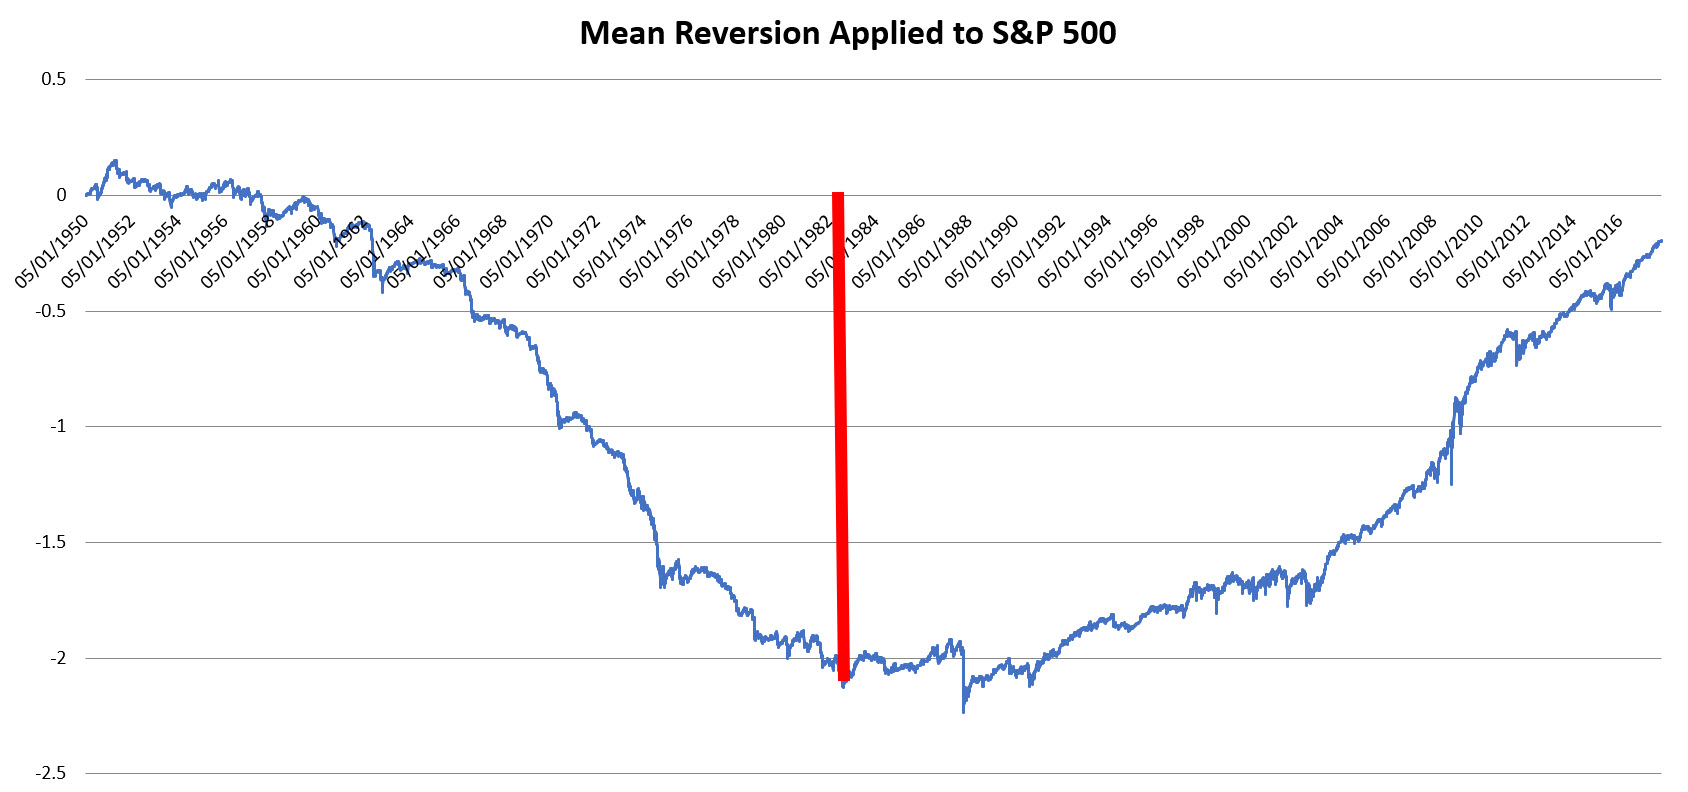 Mean Reversion applied to S&P 500